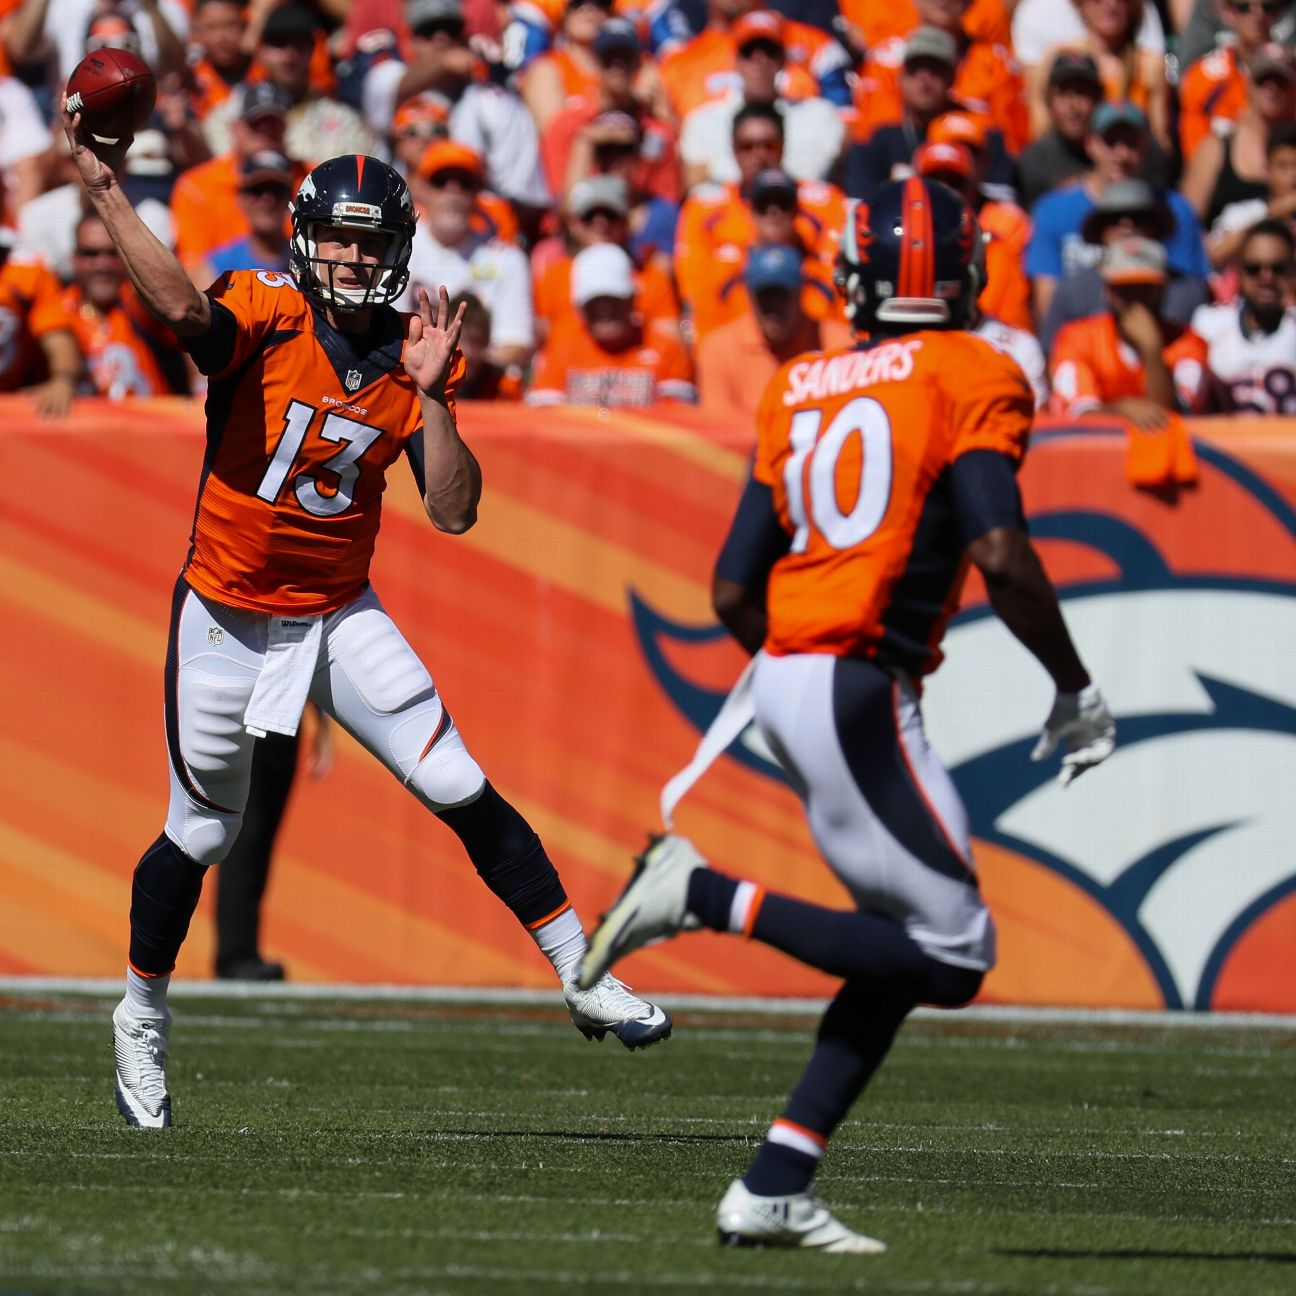 Denver Broncos Depth Chart: Broncos Would Like More Consistency From 3 WR Sets